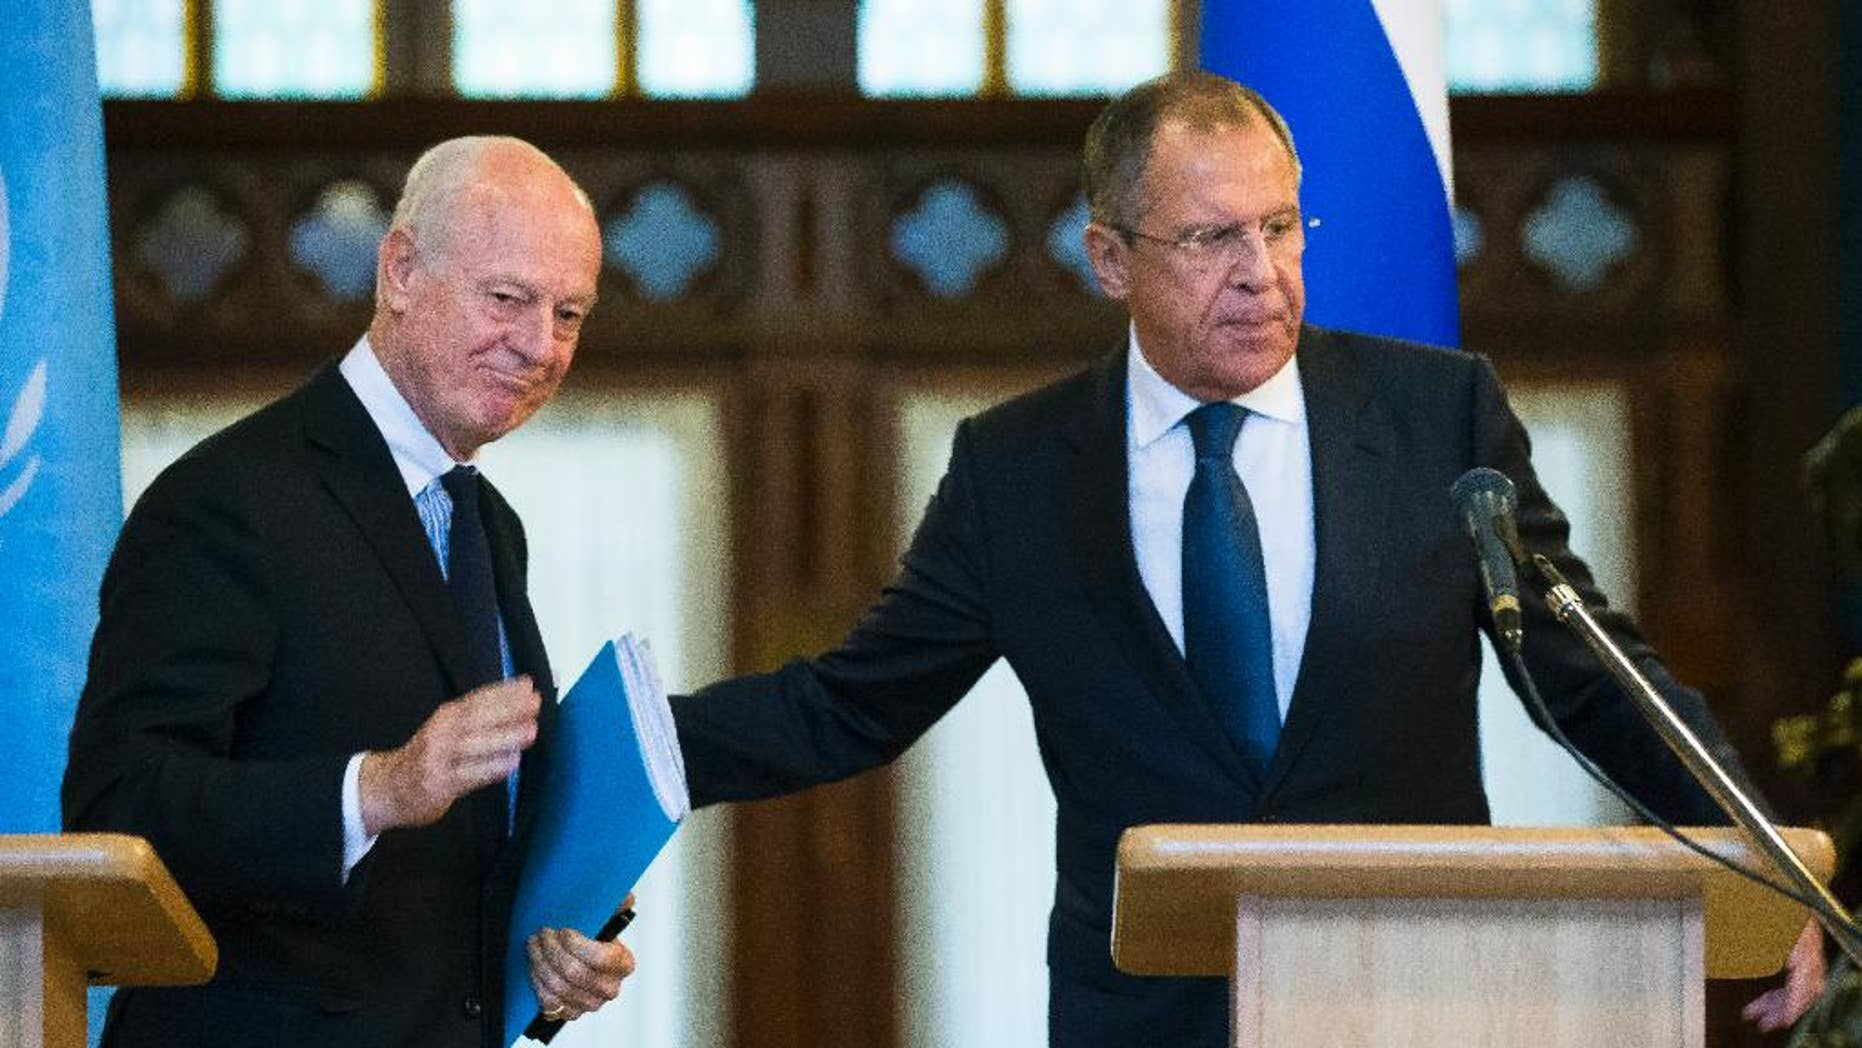 Russian Foreign Minister Sergey Lavrov, right, and U.N. Special Envoy for Syria Staffan de Mistura leave a news conference following their talks in Moscow, Russia, Wednesday, Nov. 4, 2015. Lavrov says he hopes that international peacebrokers in the coming days will agree on the list of opposition groups that should be invited to peace talks. (AP Photo/Alexander Zemlianichenko)